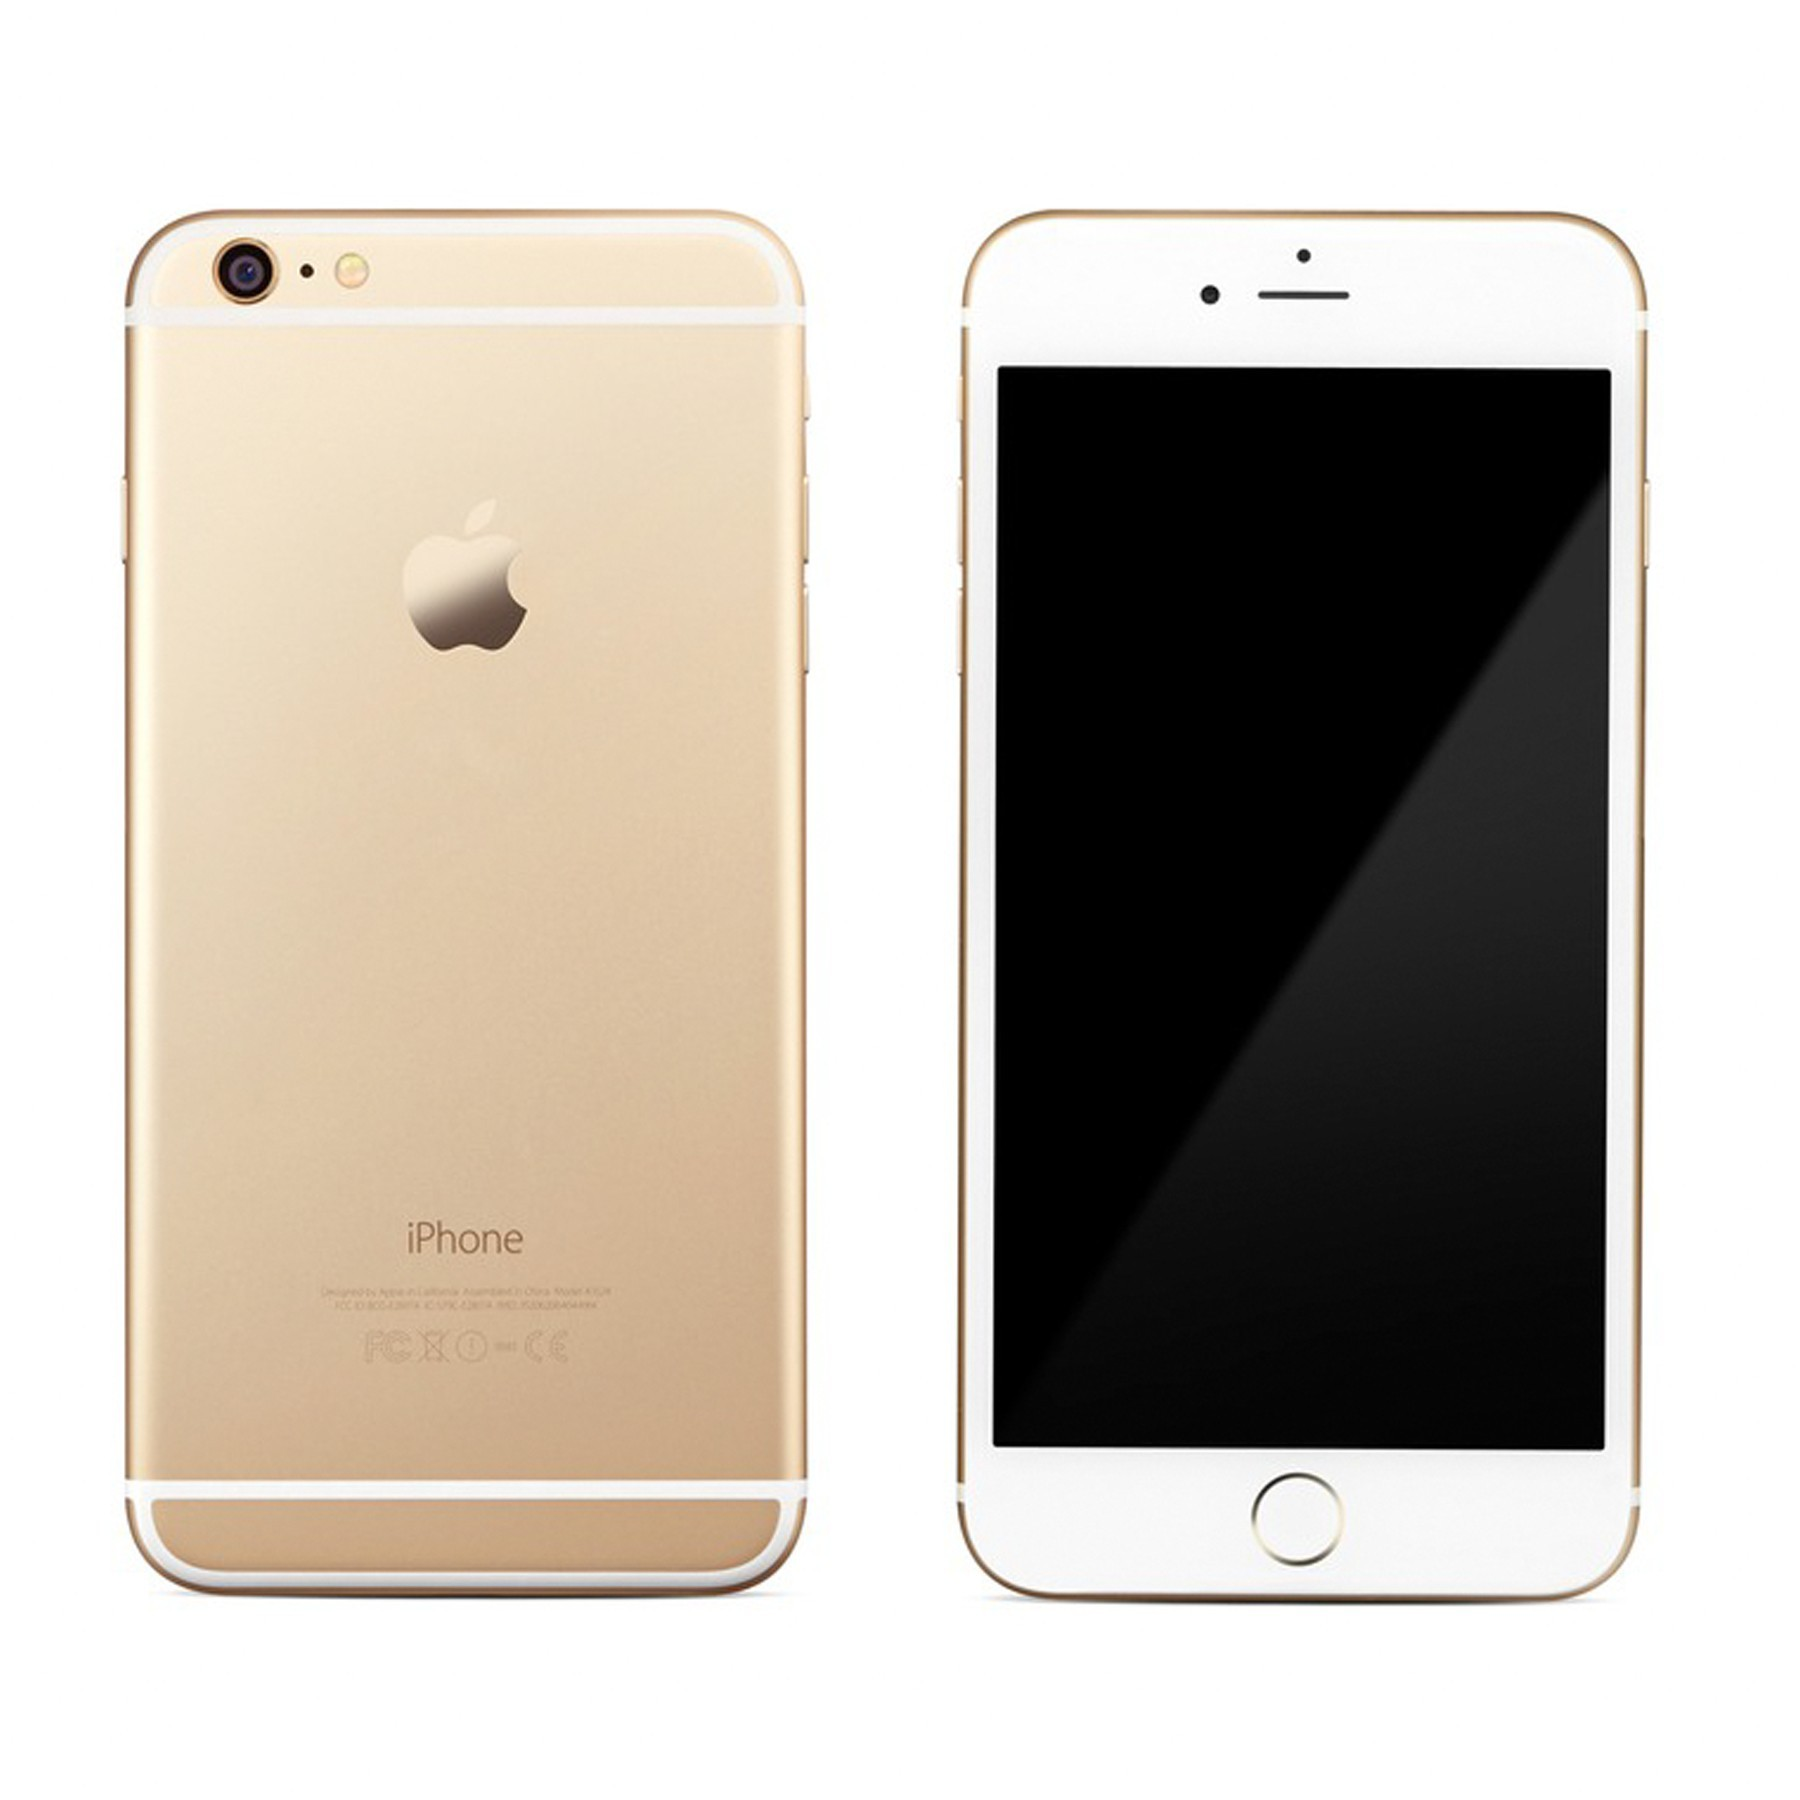 iPhone 6 Plus 128G Gold Ảnh số 38367781